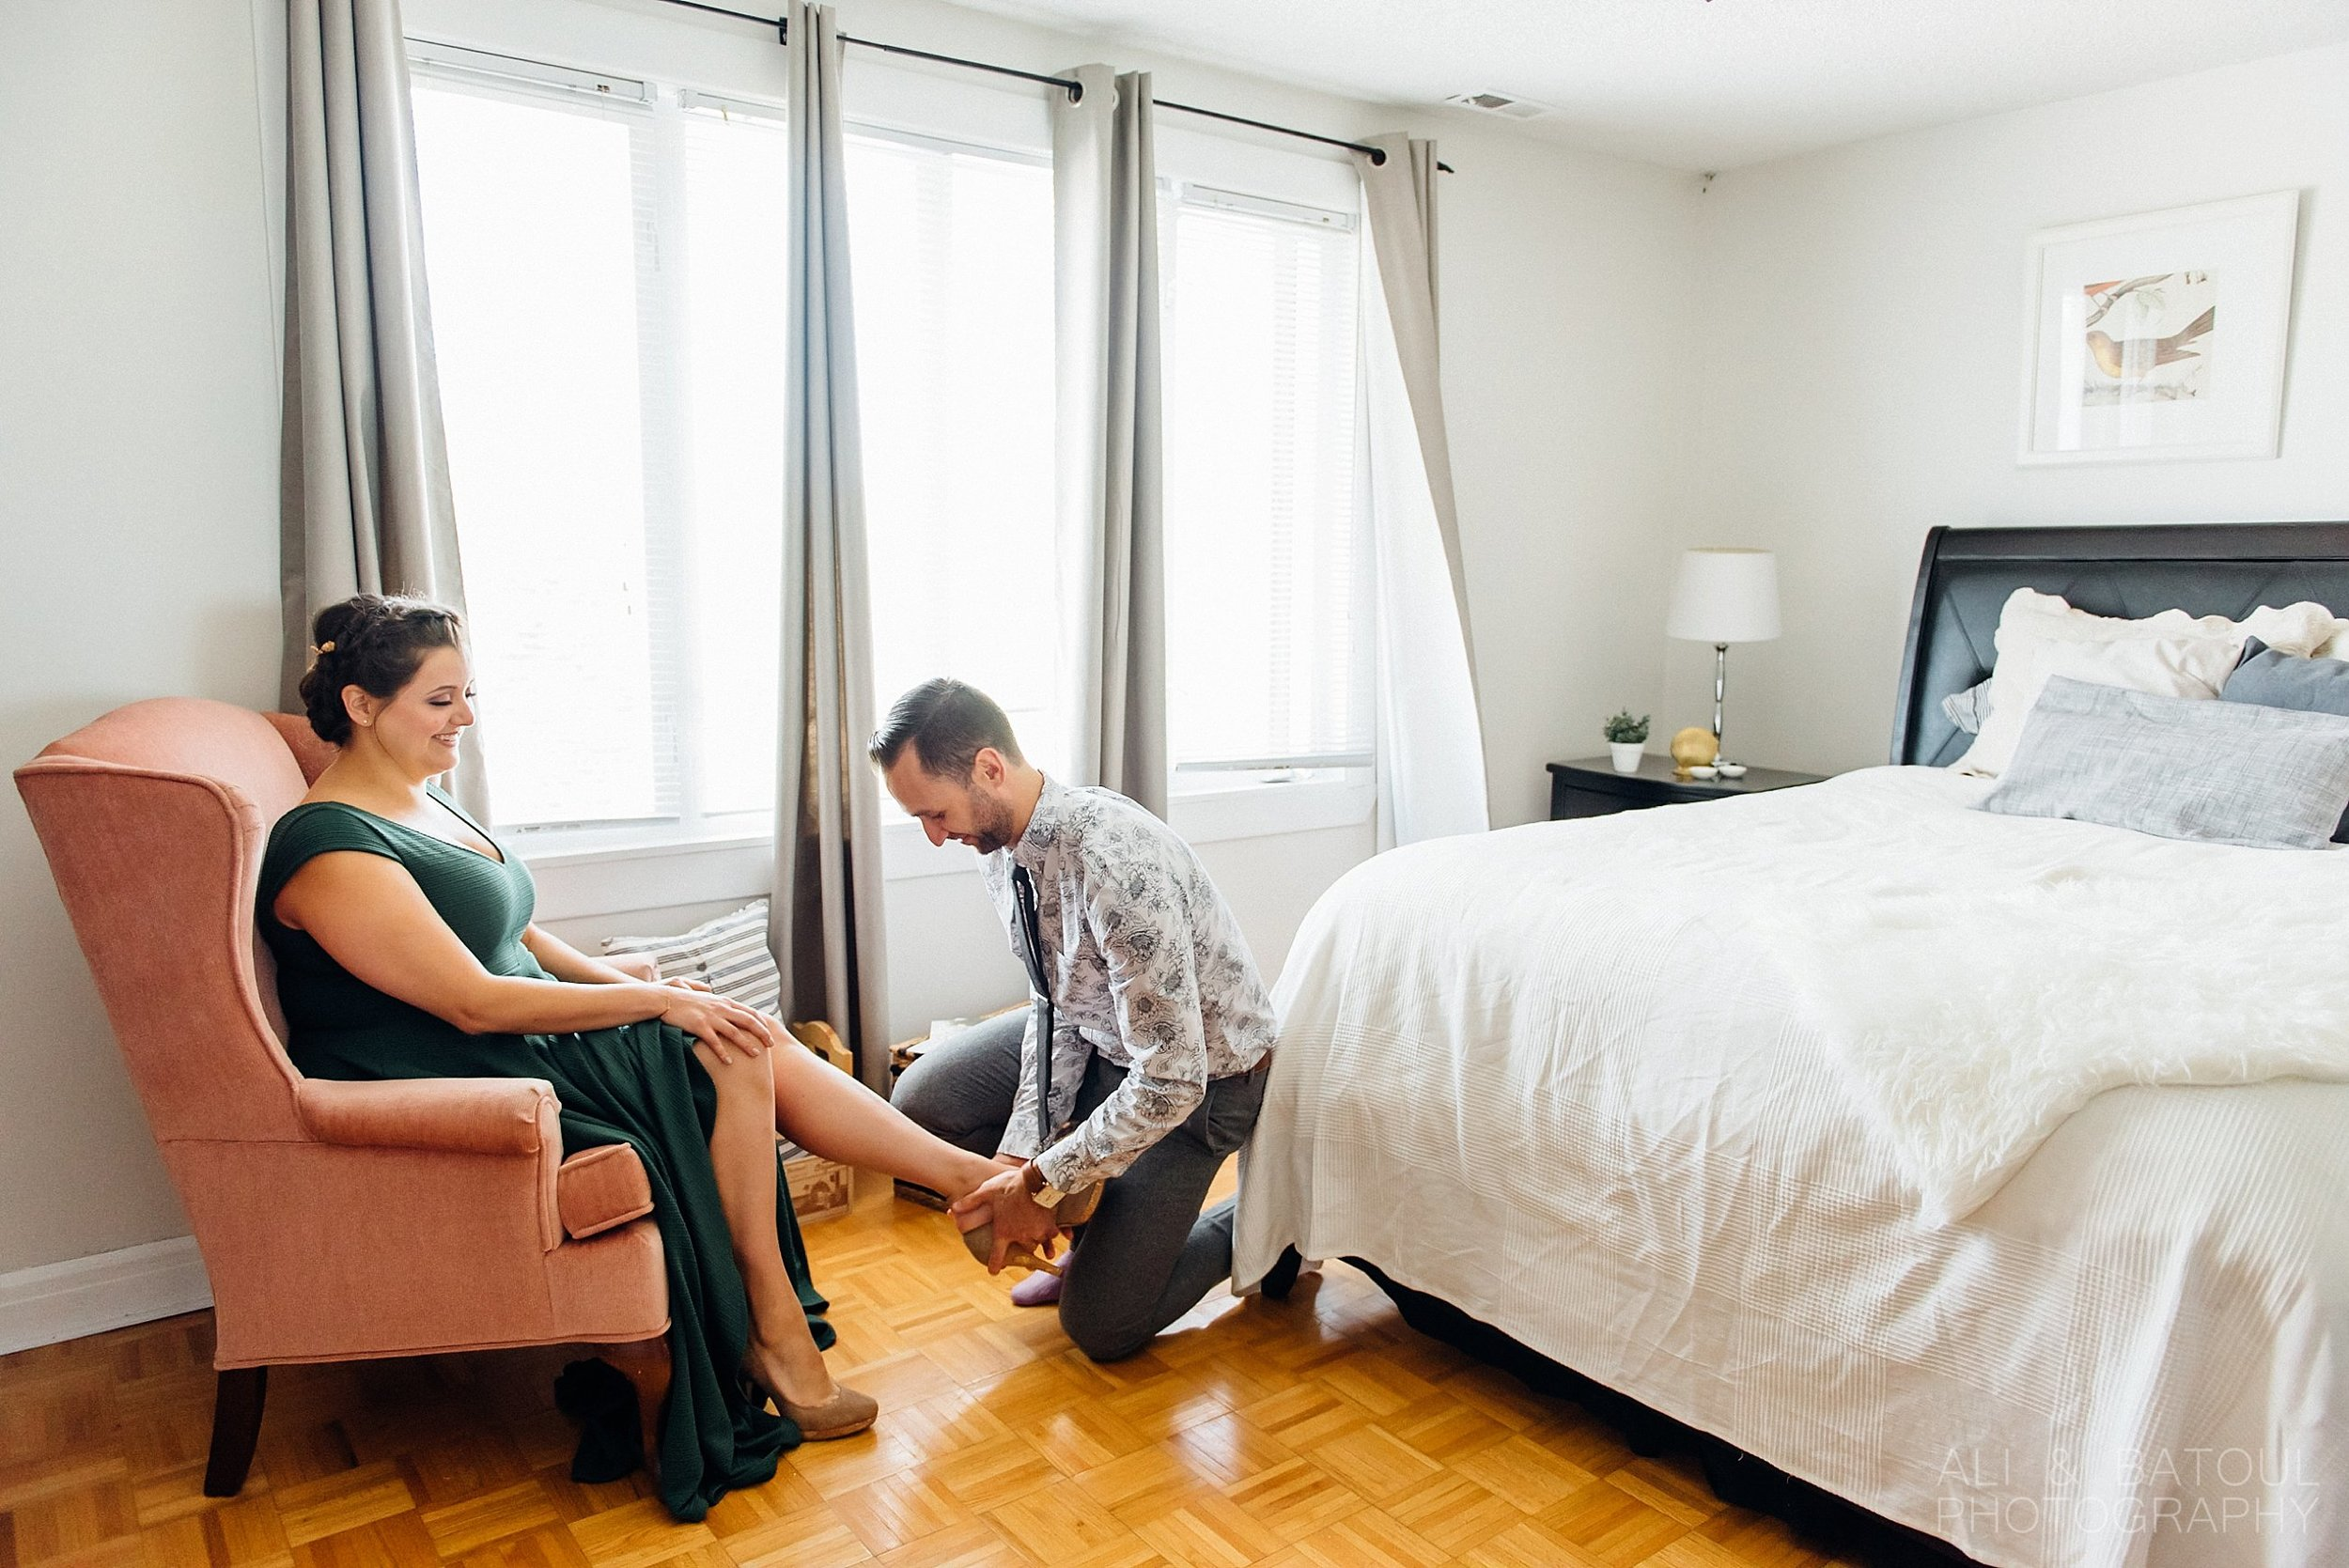 Ali and Batoul Photography - light, airy, indie documentary Ottawa wedding photographer_0032.jpg